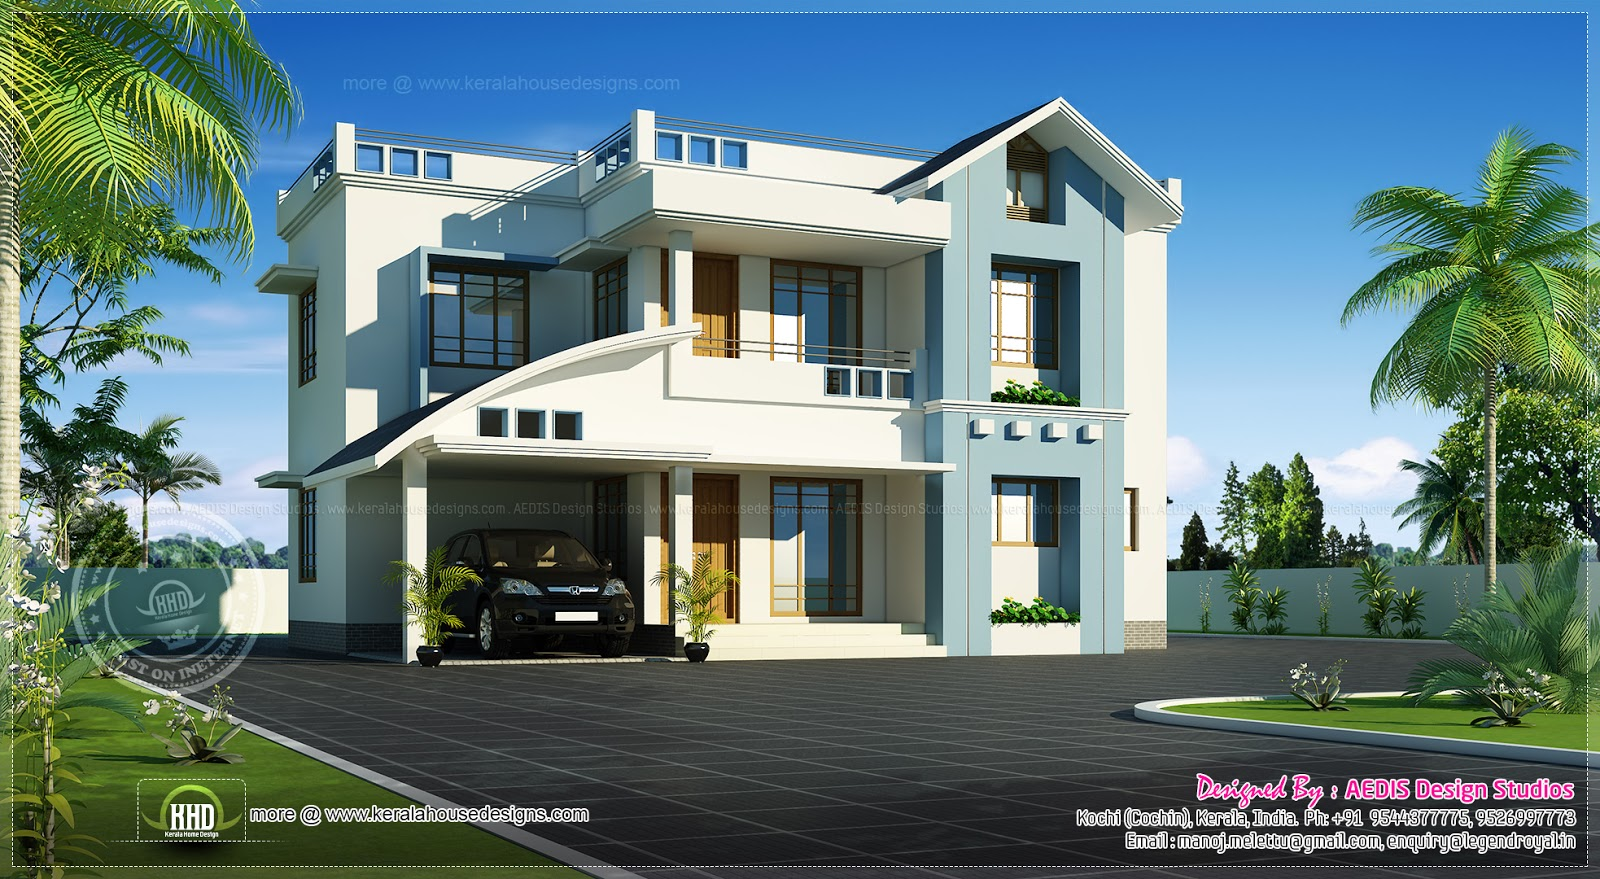 Modern mix house looks bigger than 1600 sq ft kerala for Modern house plans for 1600 sq ft